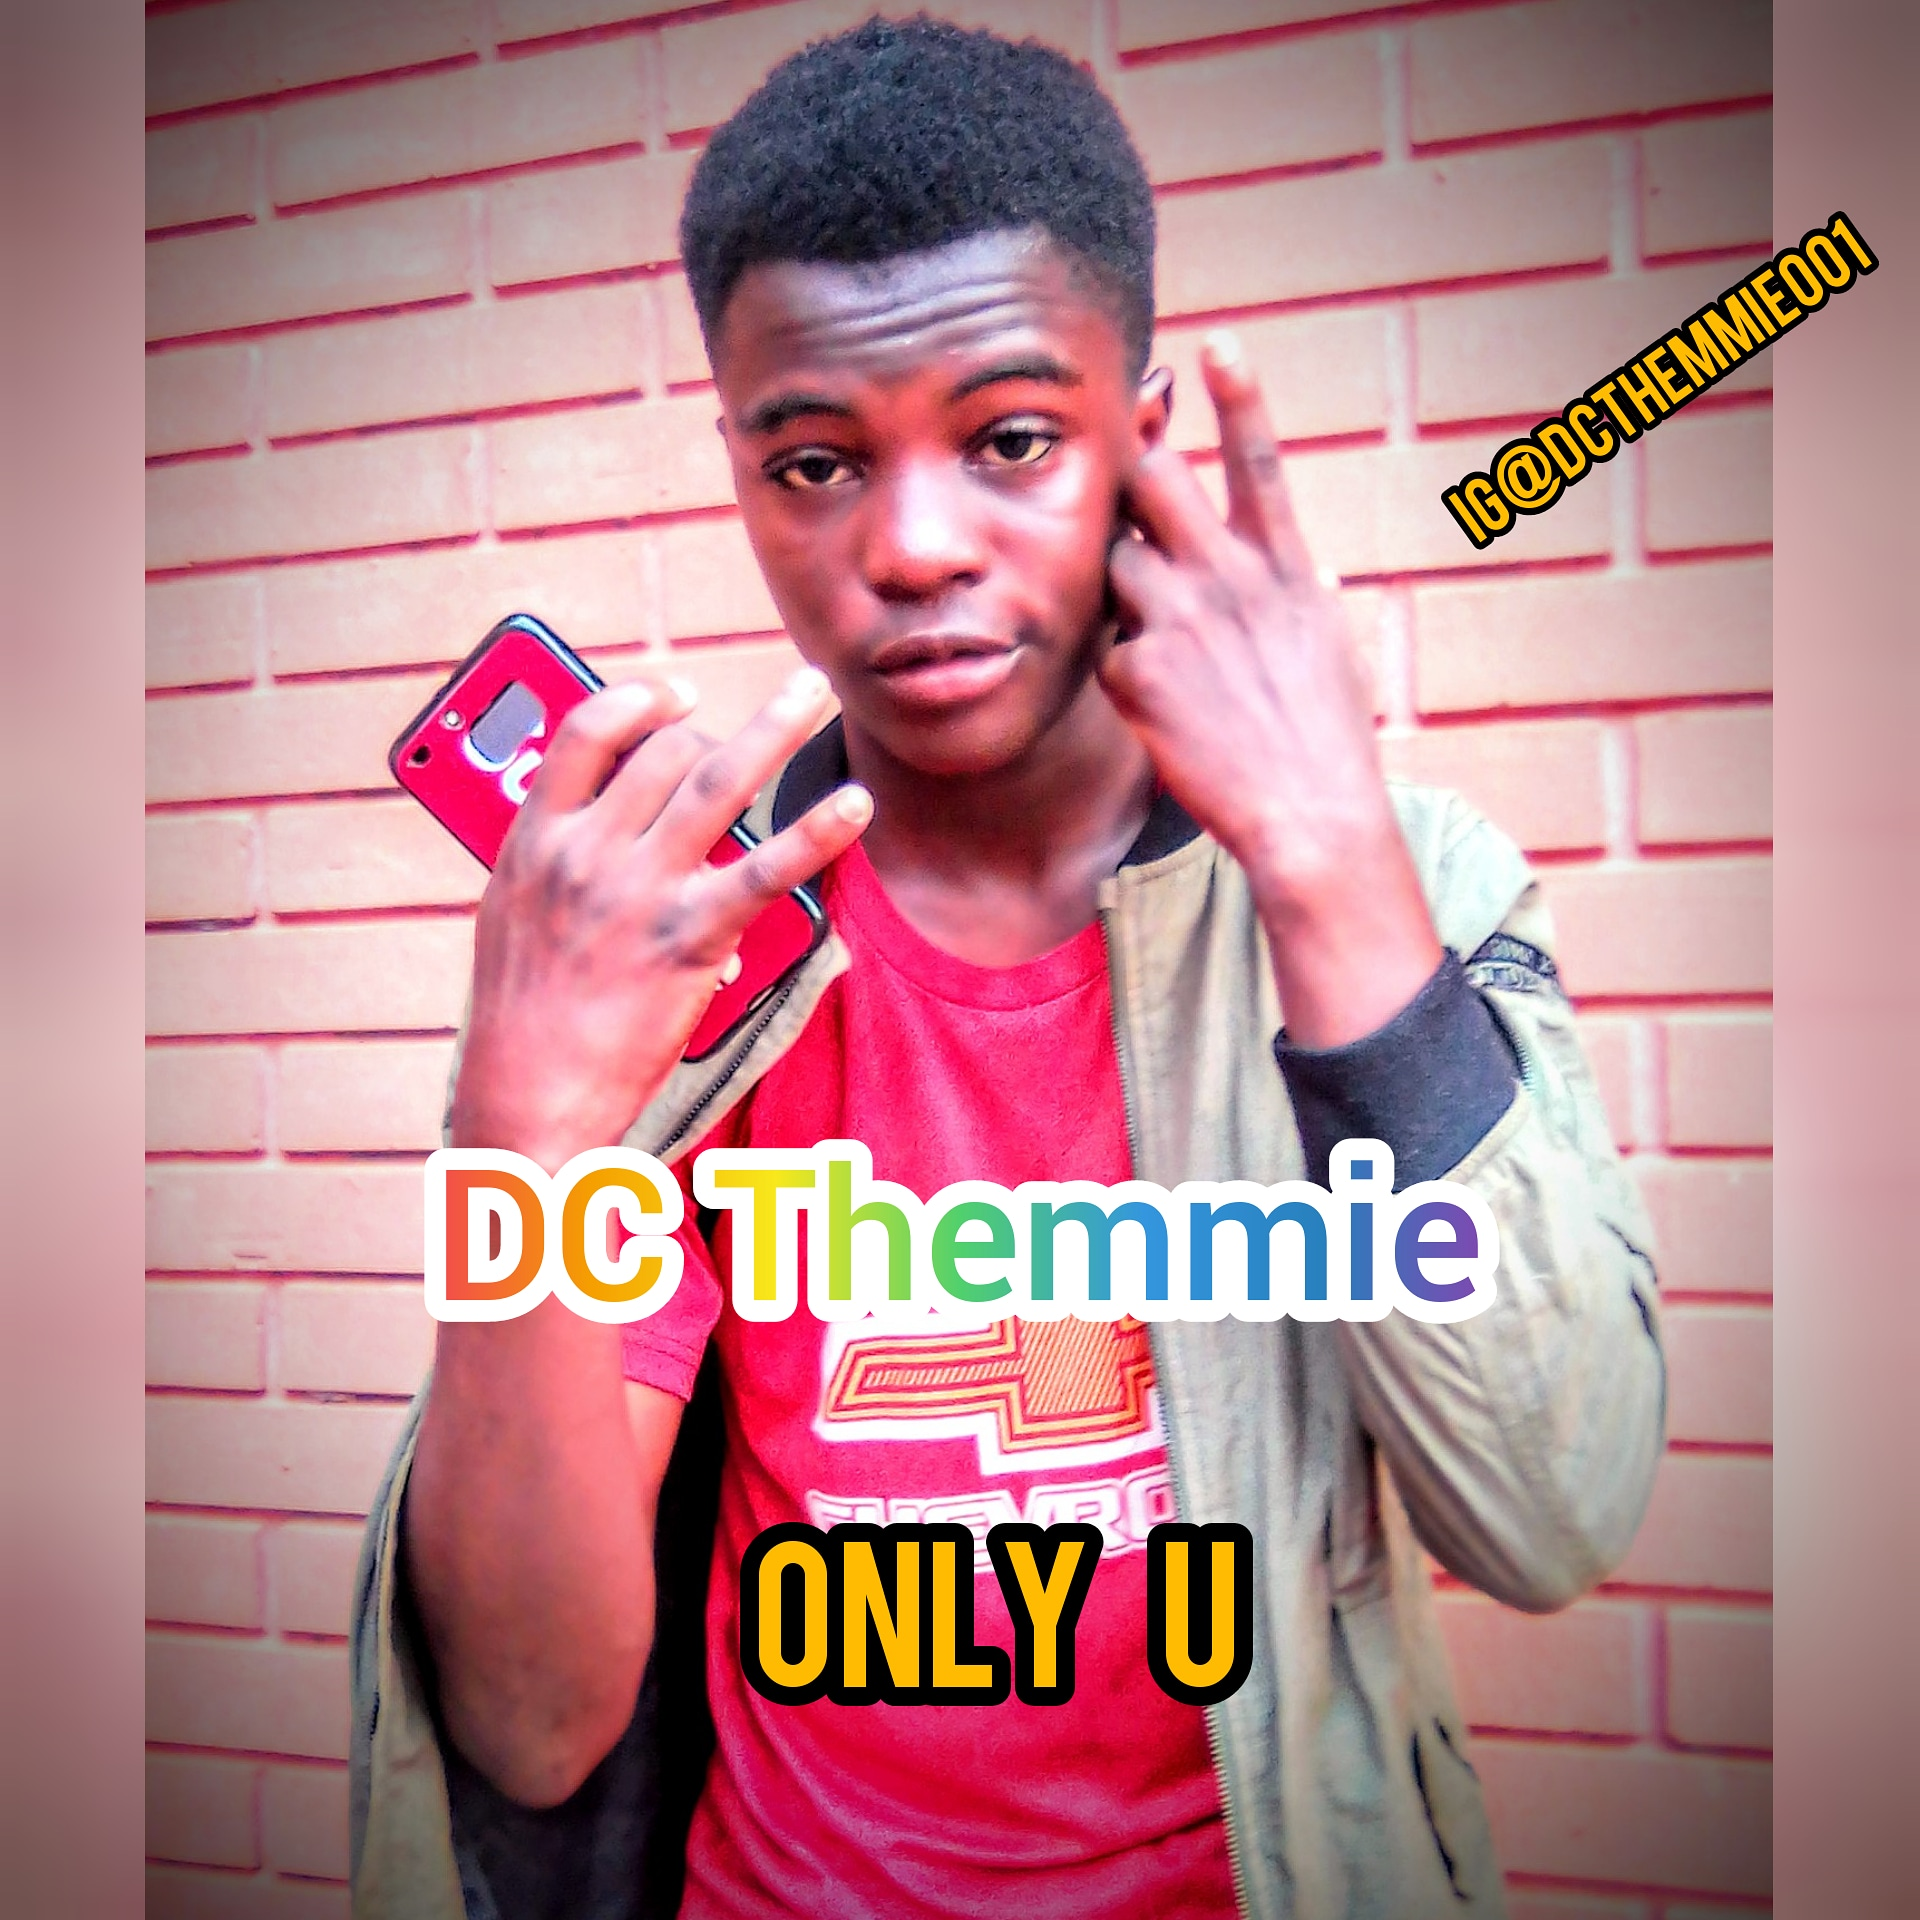 DC Themmie